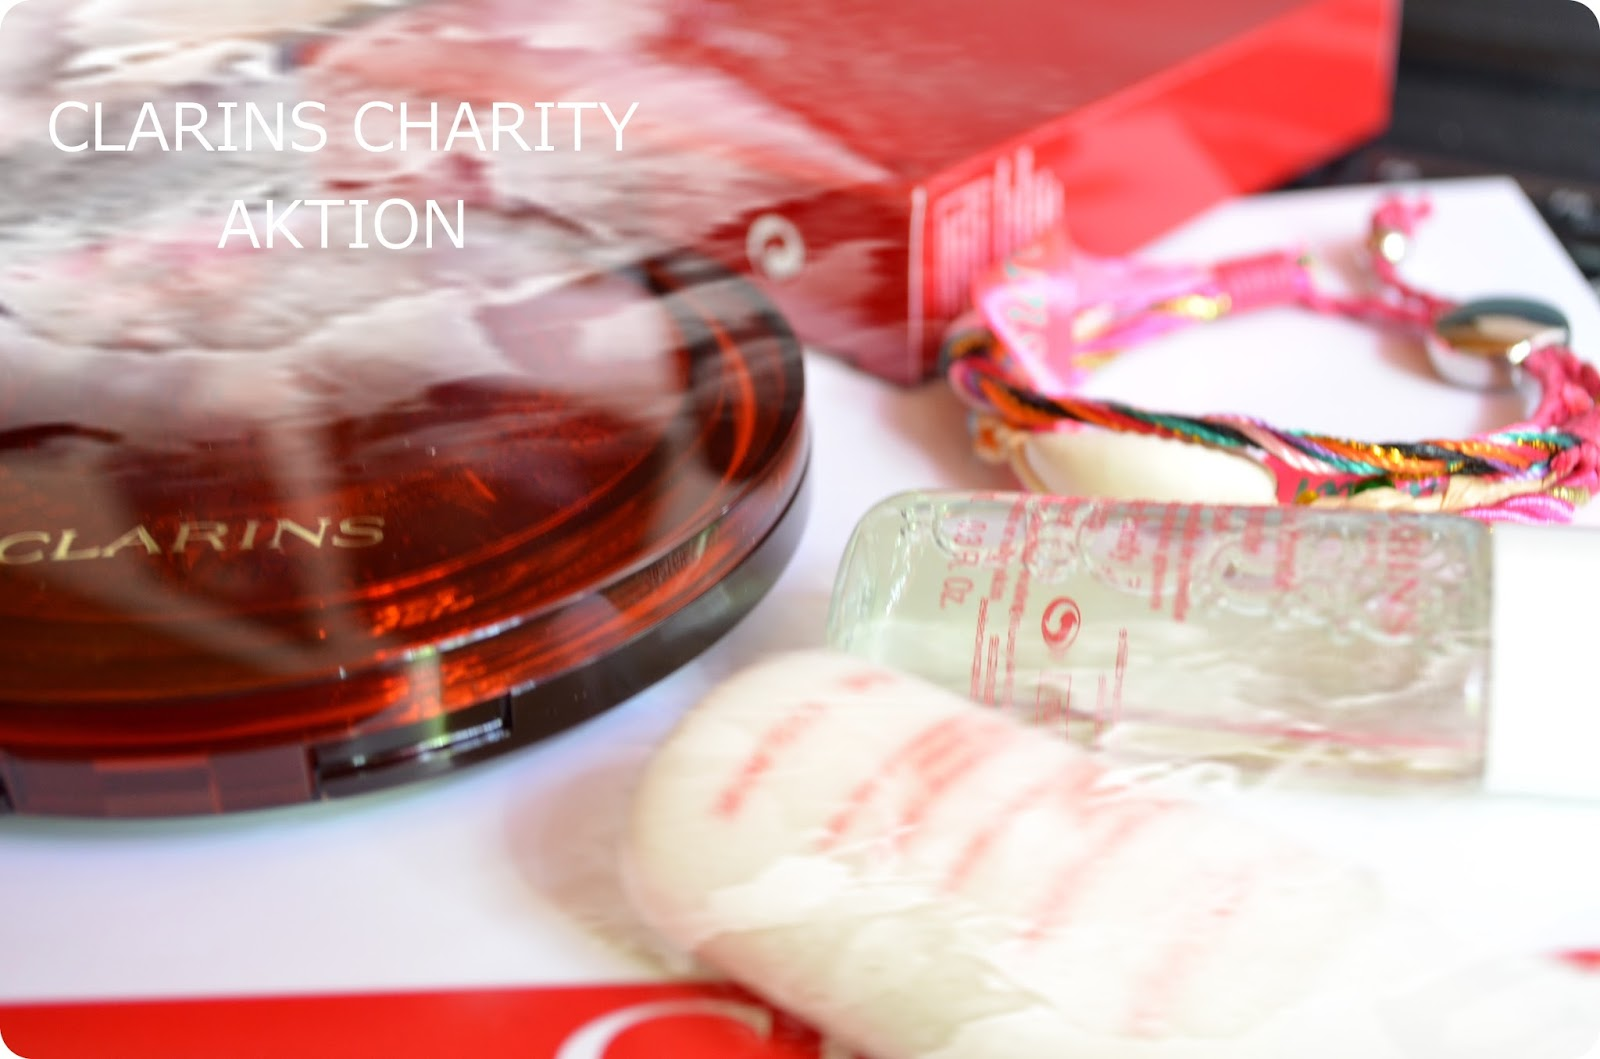 Charity Aktion Clarins und Hipanema.